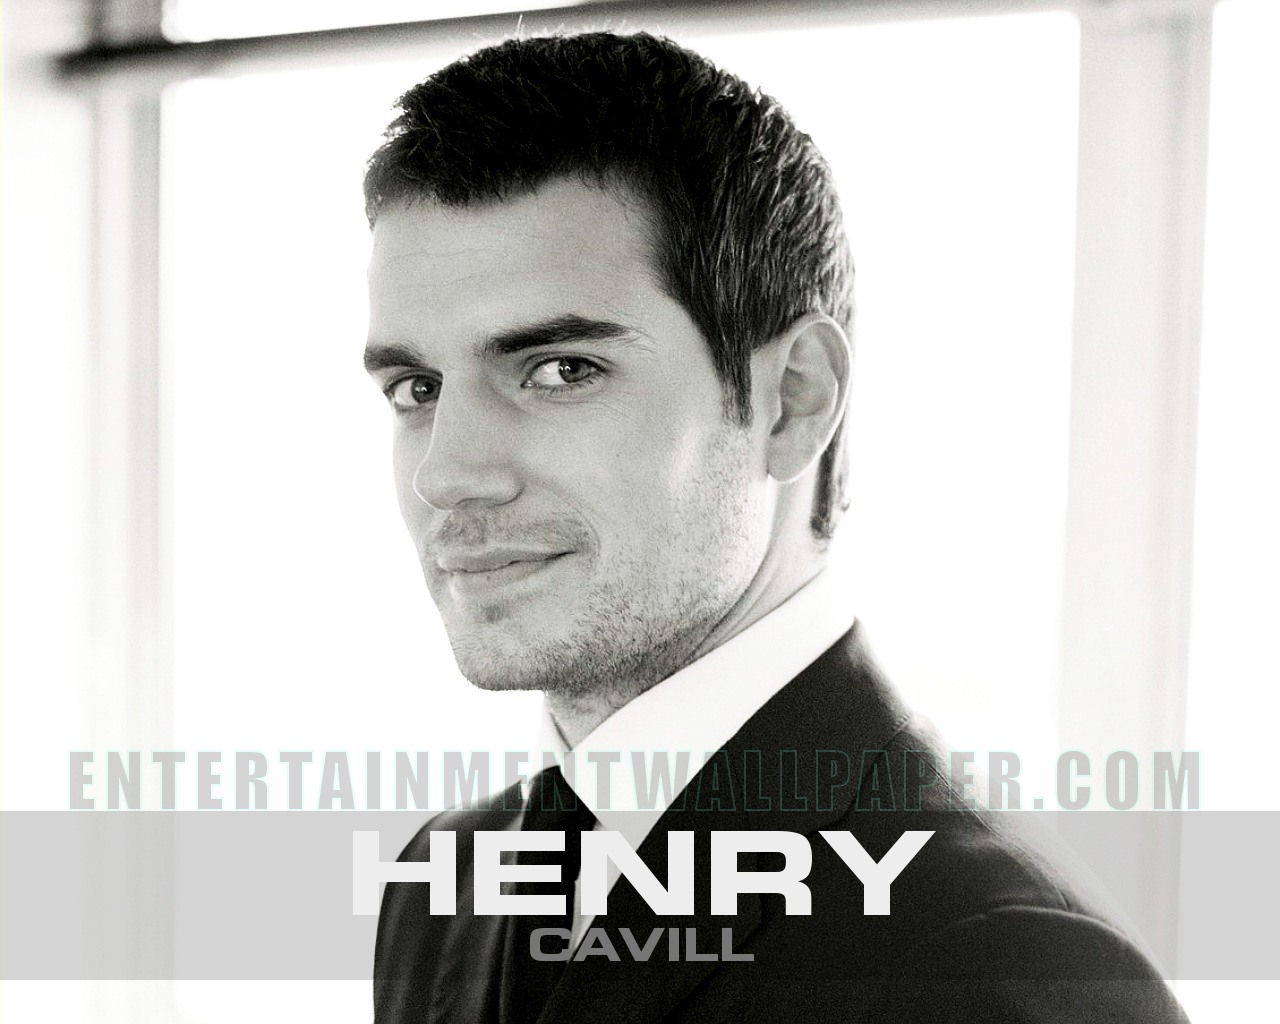 Wallpaper Information: Henry Cavill 42001